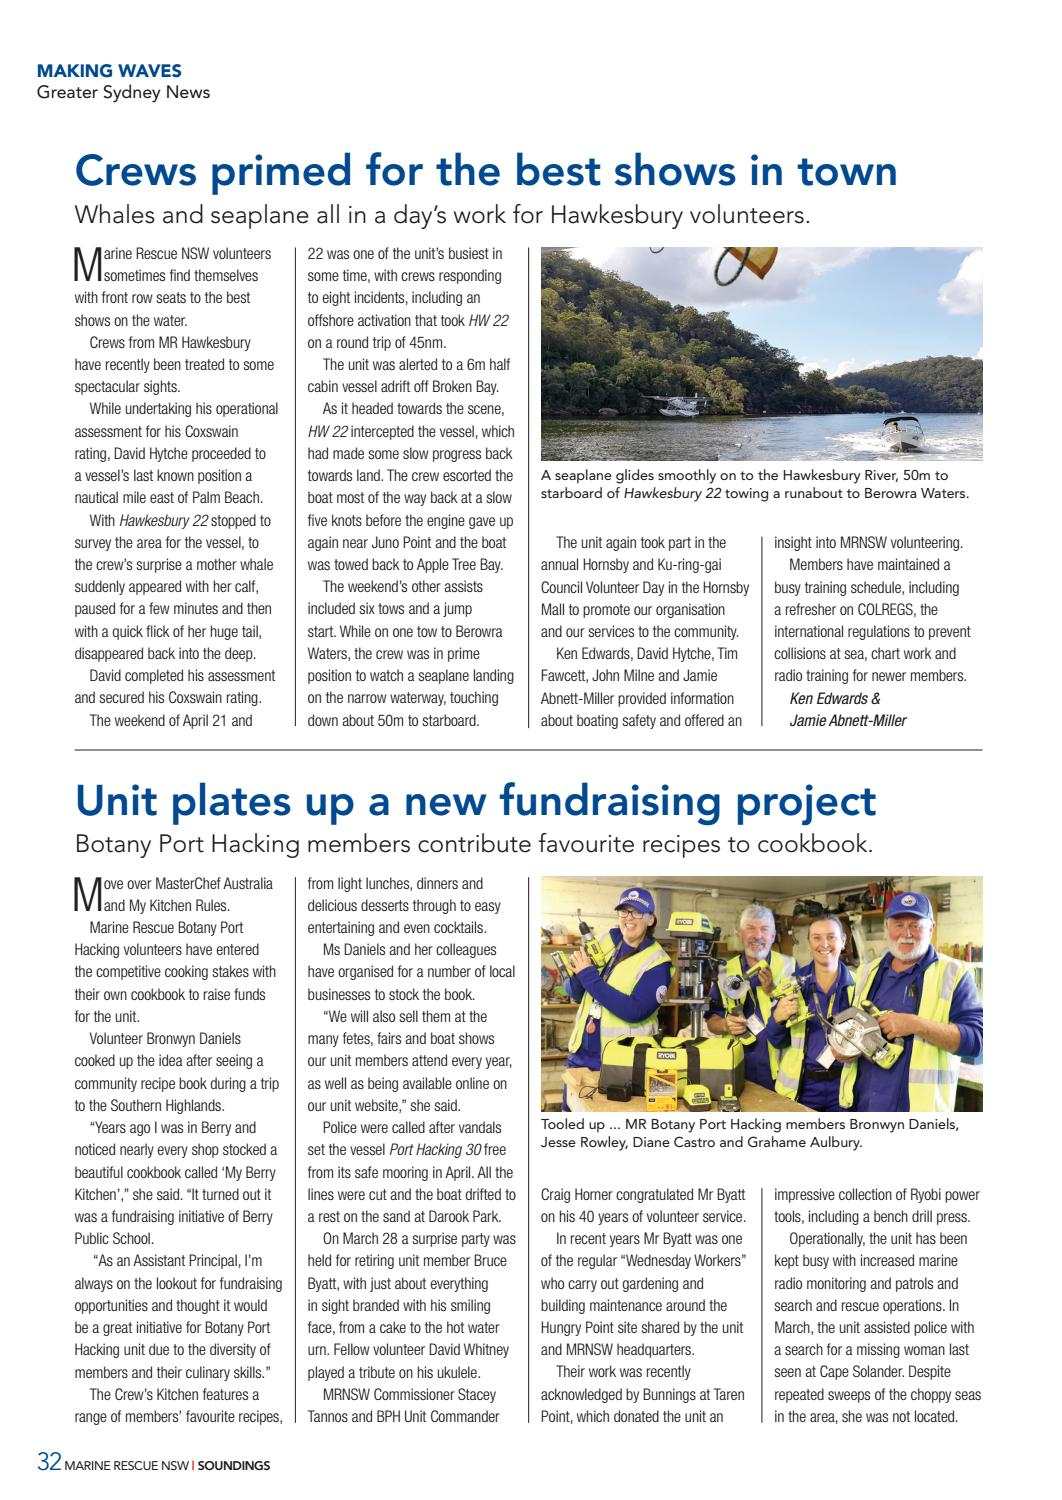 Soundings issue 35 winter 2018 by Marine Rescue NSW - issuu